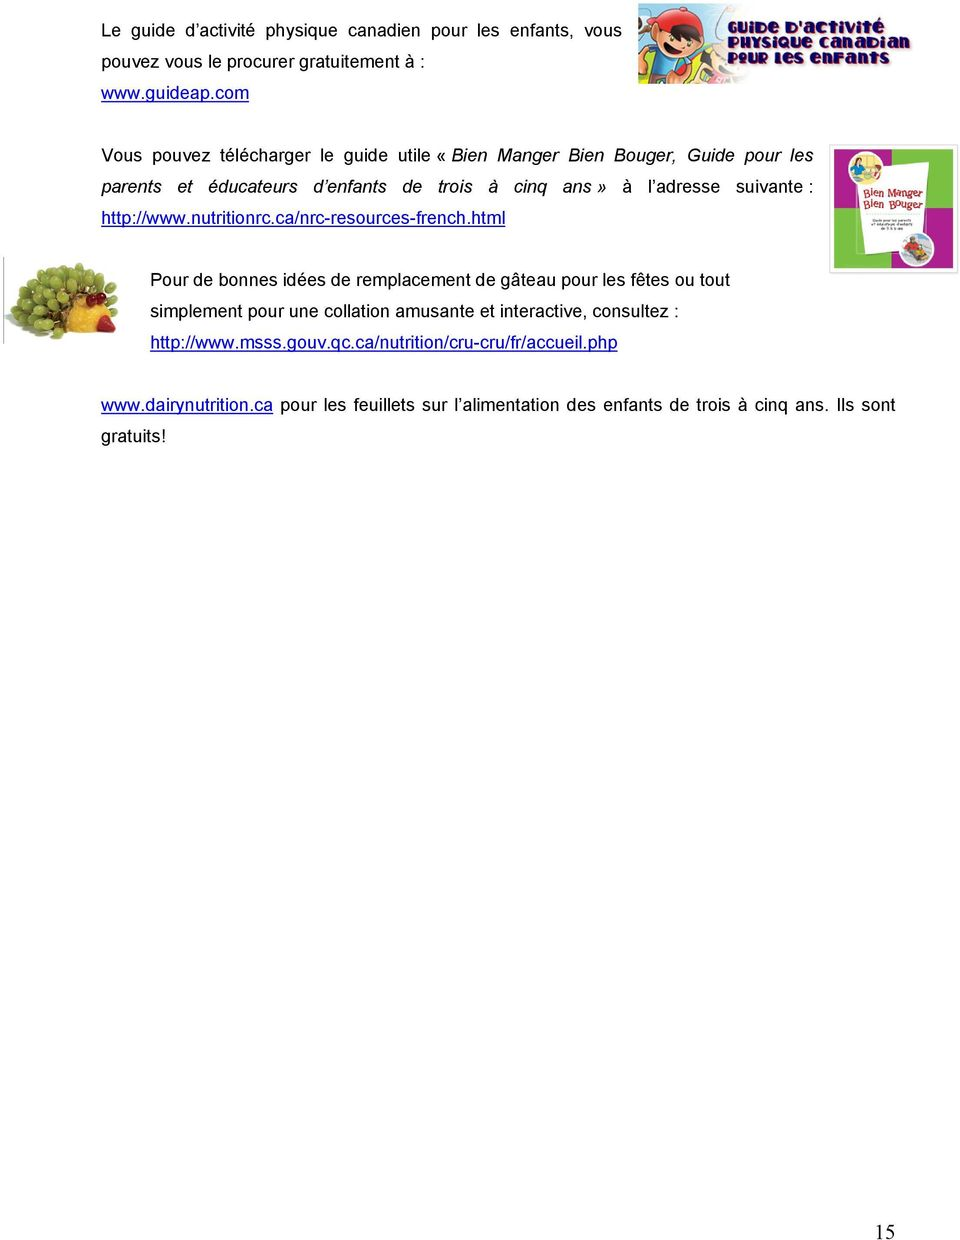 http://www.nutritionrc.ca/nrc-resources-french.